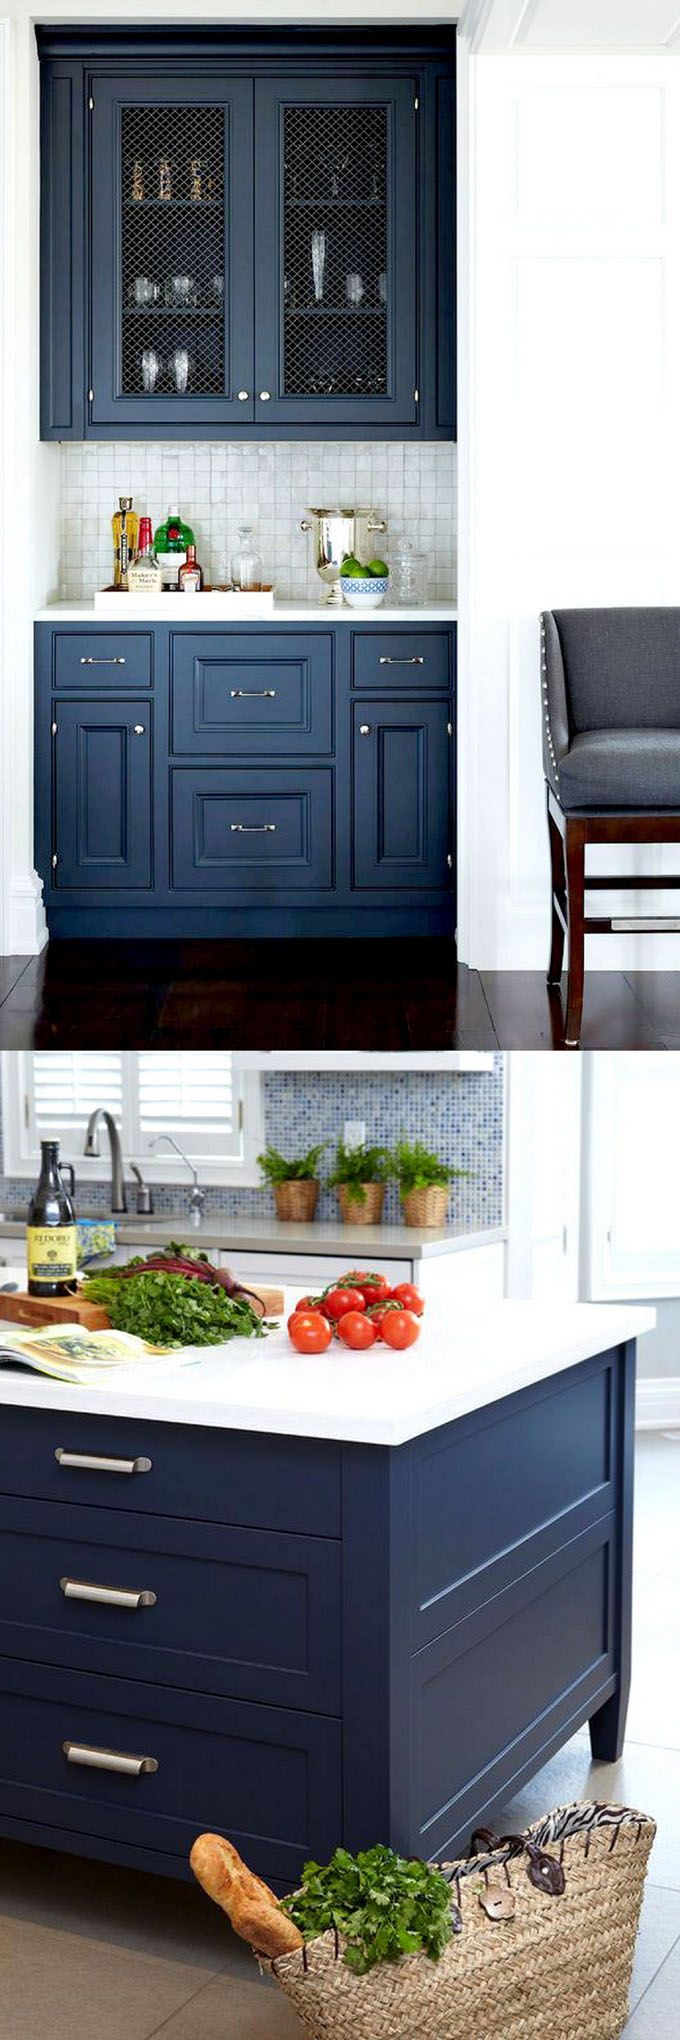 Kitchen Design Ideas Painted Cabinets best 20+ painting kitchen cabinets ideas on pinterest | painting